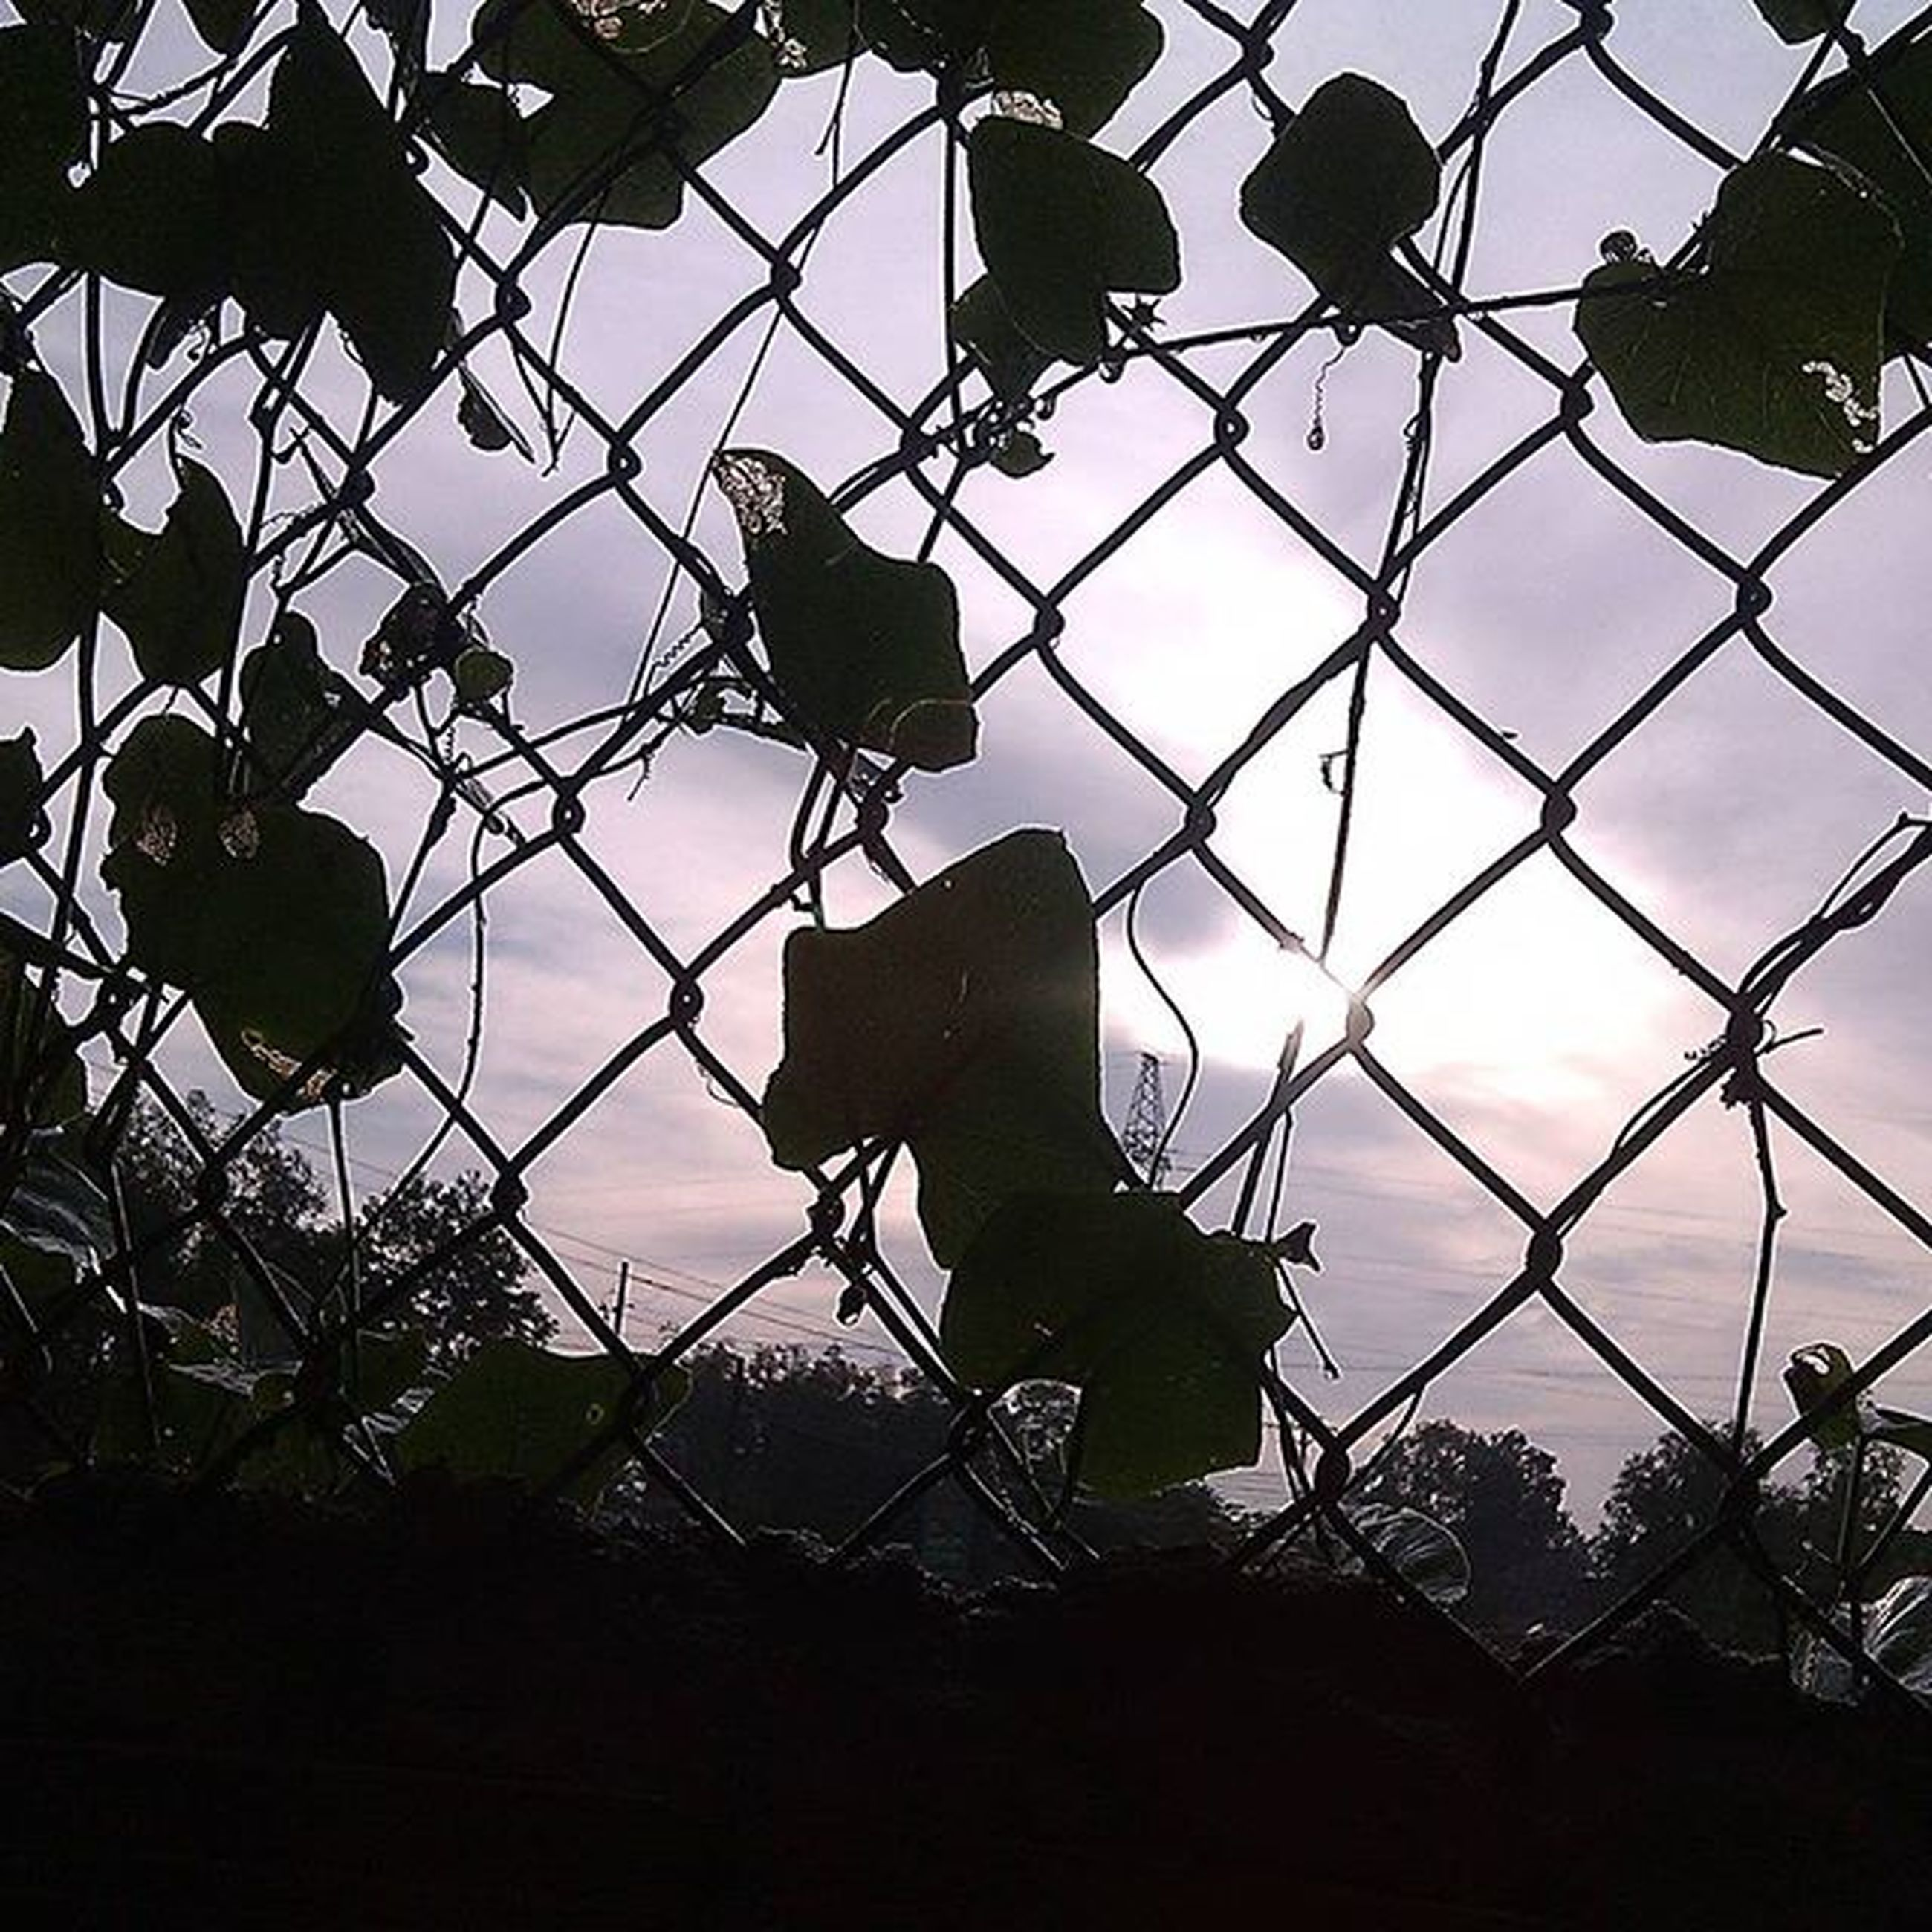 sky, branch, focus on foreground, chainlink fence, security, tree, protection, fence, safety, silhouette, low angle view, close-up, metal, building exterior, leaf, built structure, plant, no people, growth, architecture